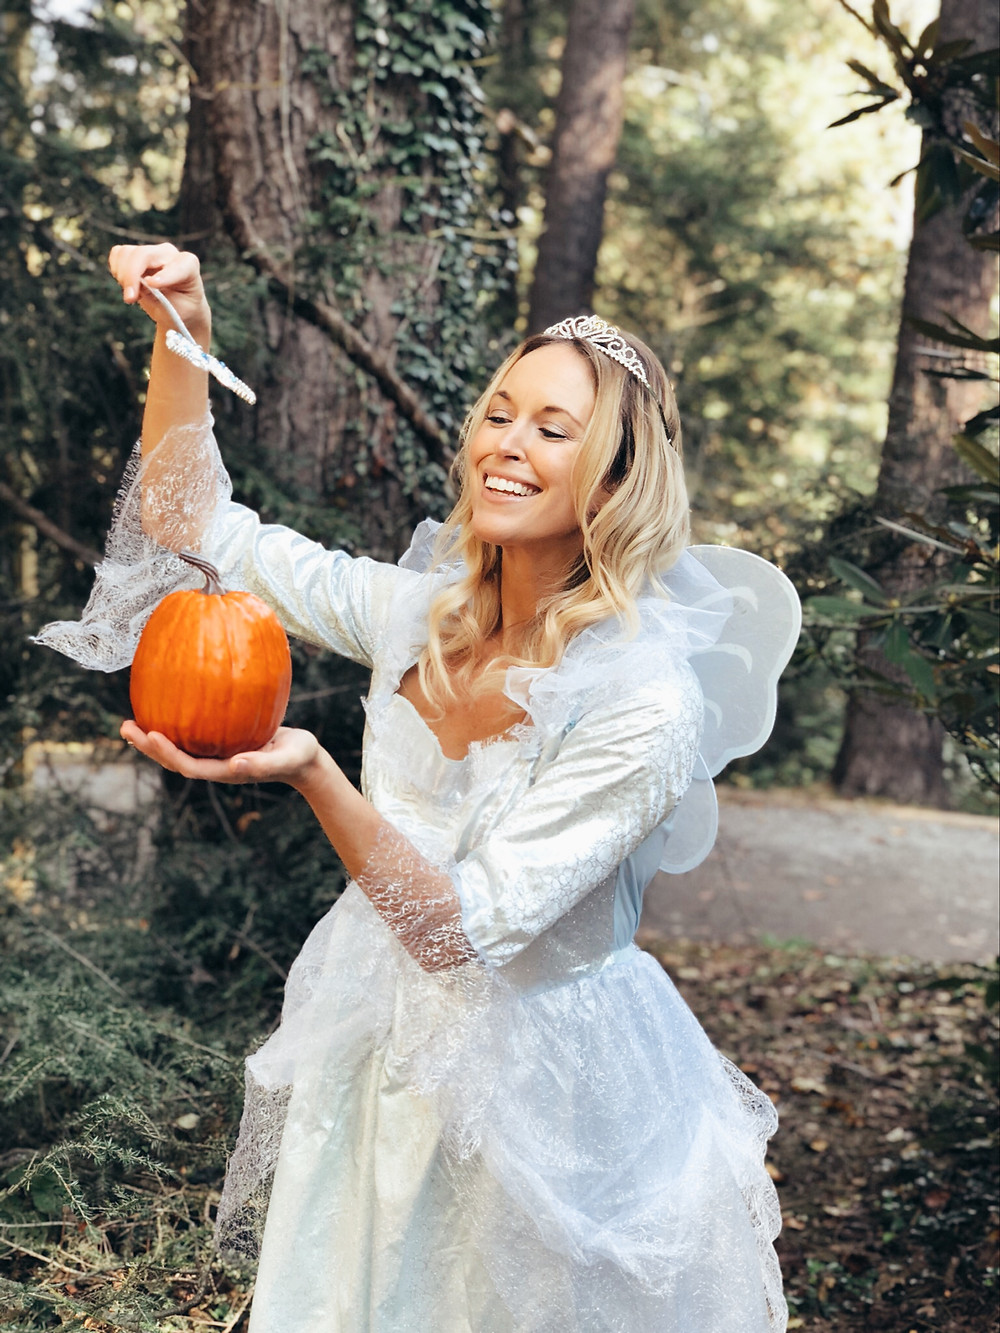 A woman dressed as the Fairy Godmother from Cinderella waves her magic wand at a pumpkin.